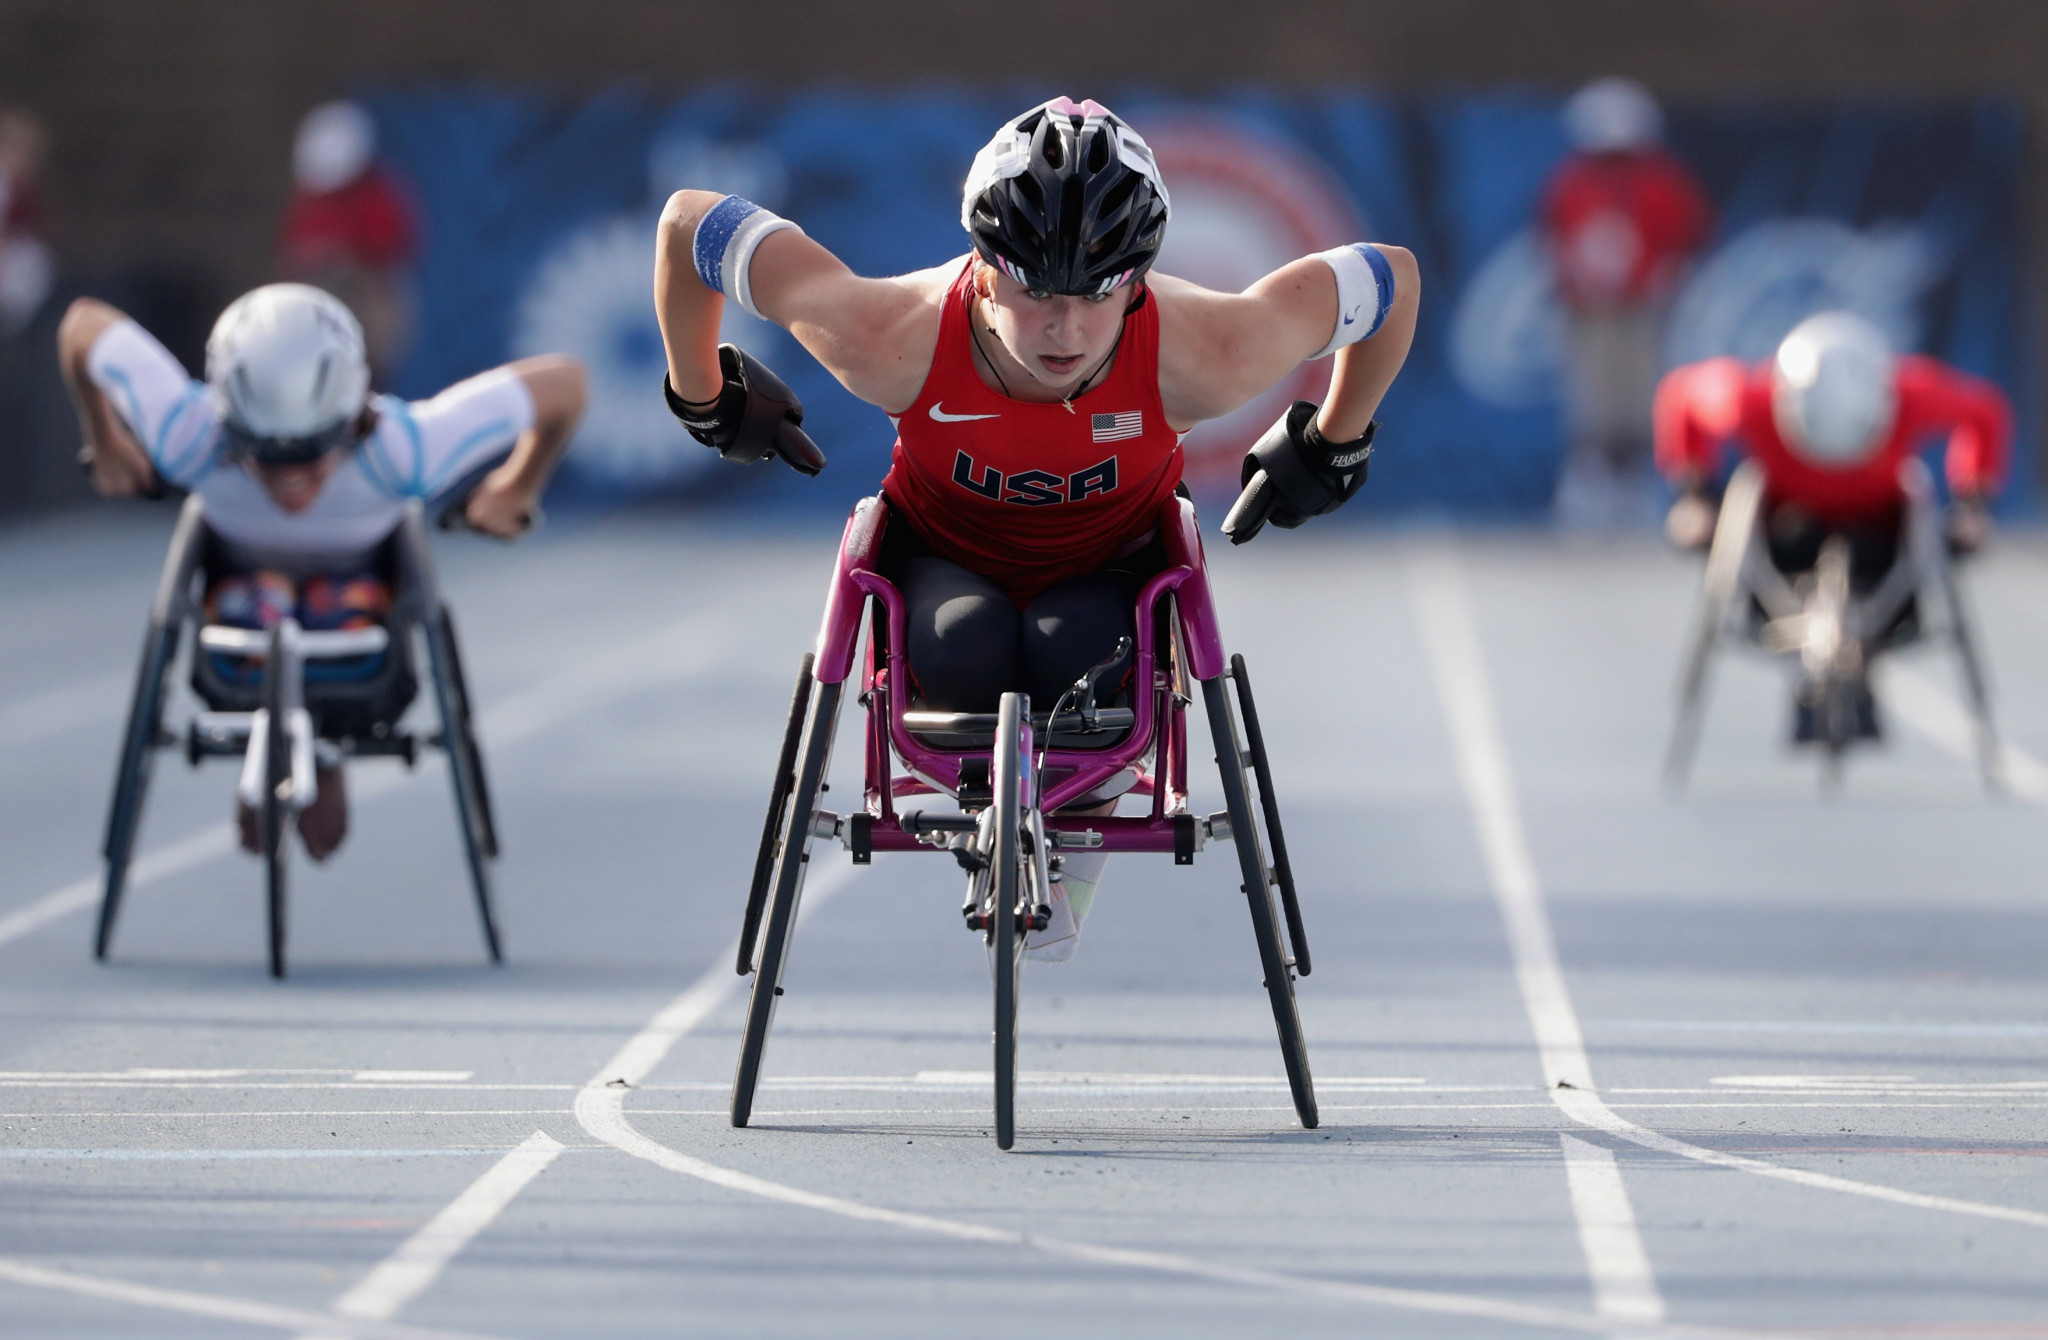 Alexa Halko was named Female Track Athlete of the Year having won three medals at the 2017 World Para Athletics Championships in London ©Getty Images